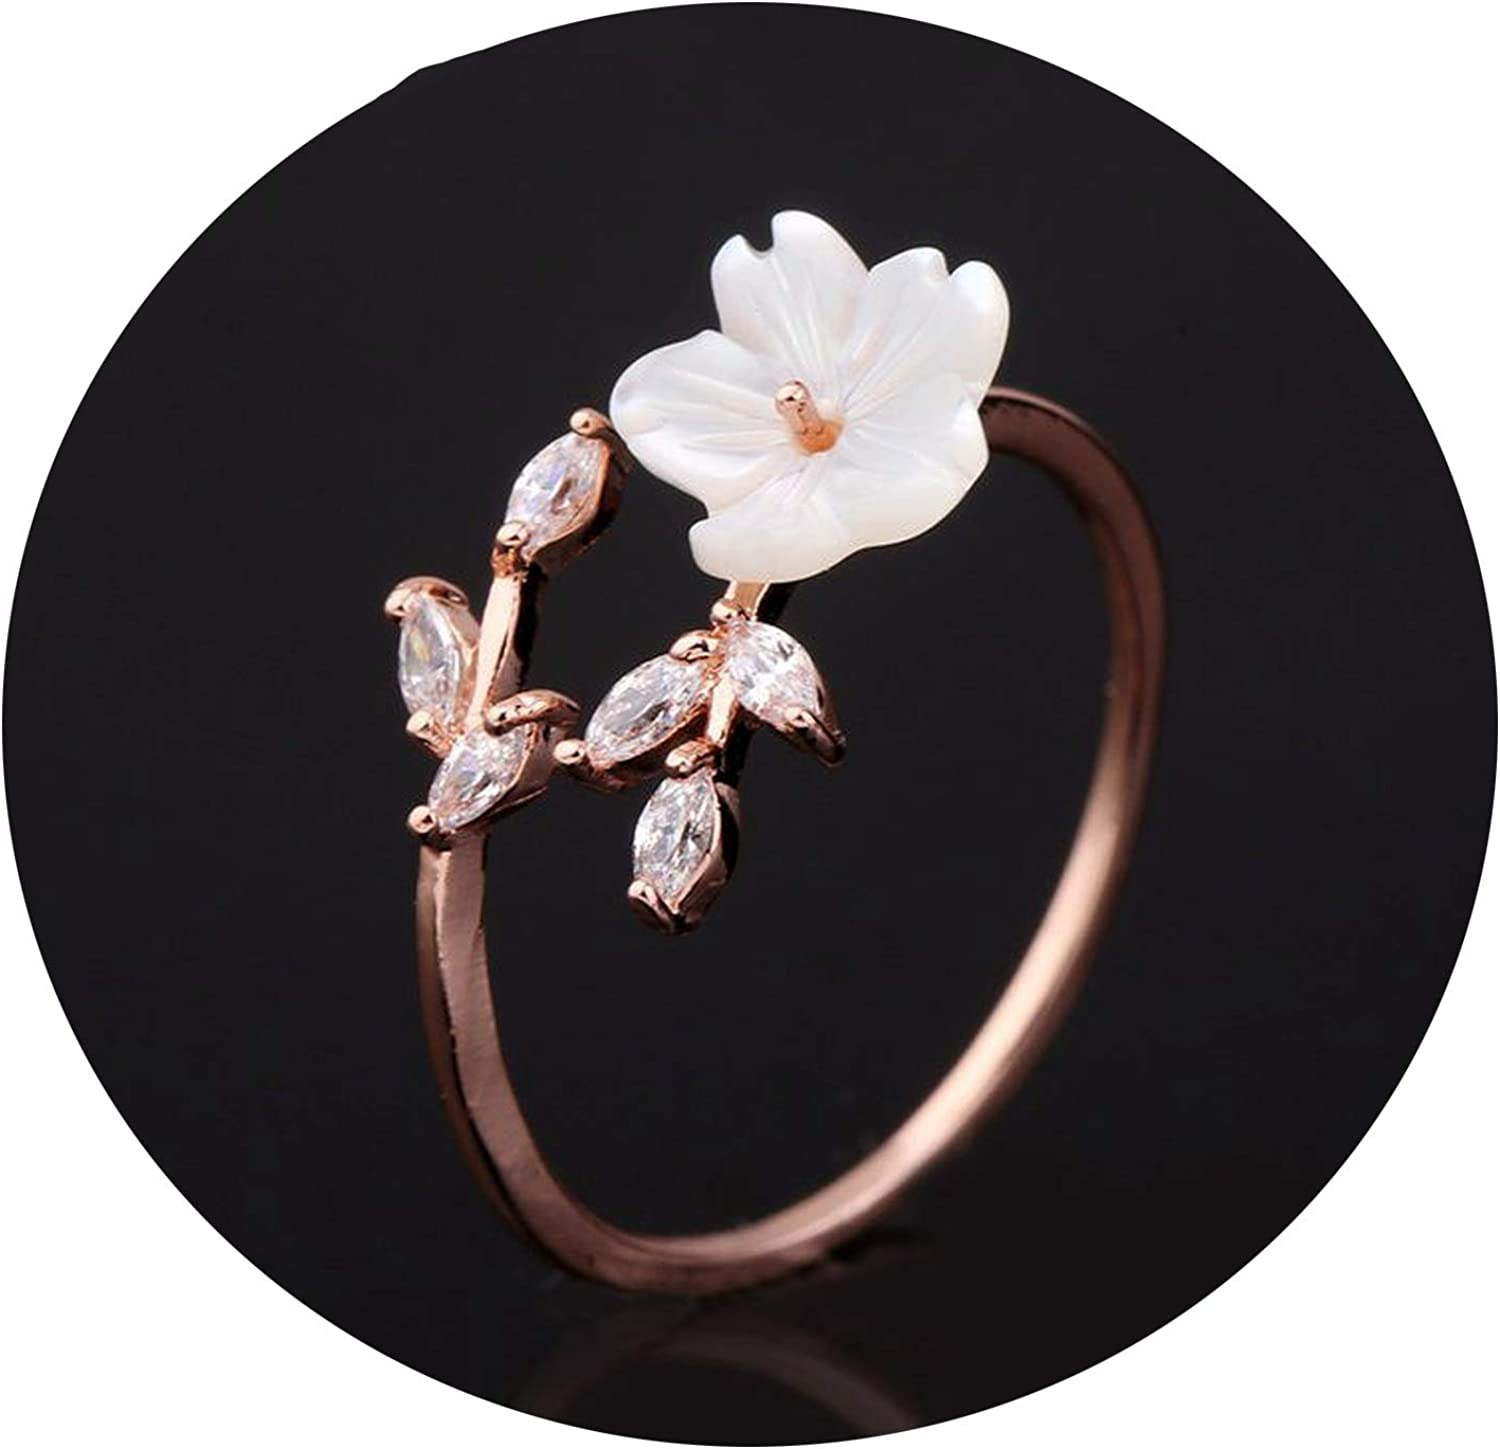 size 7.5 Delicate Crystal Flower Ring